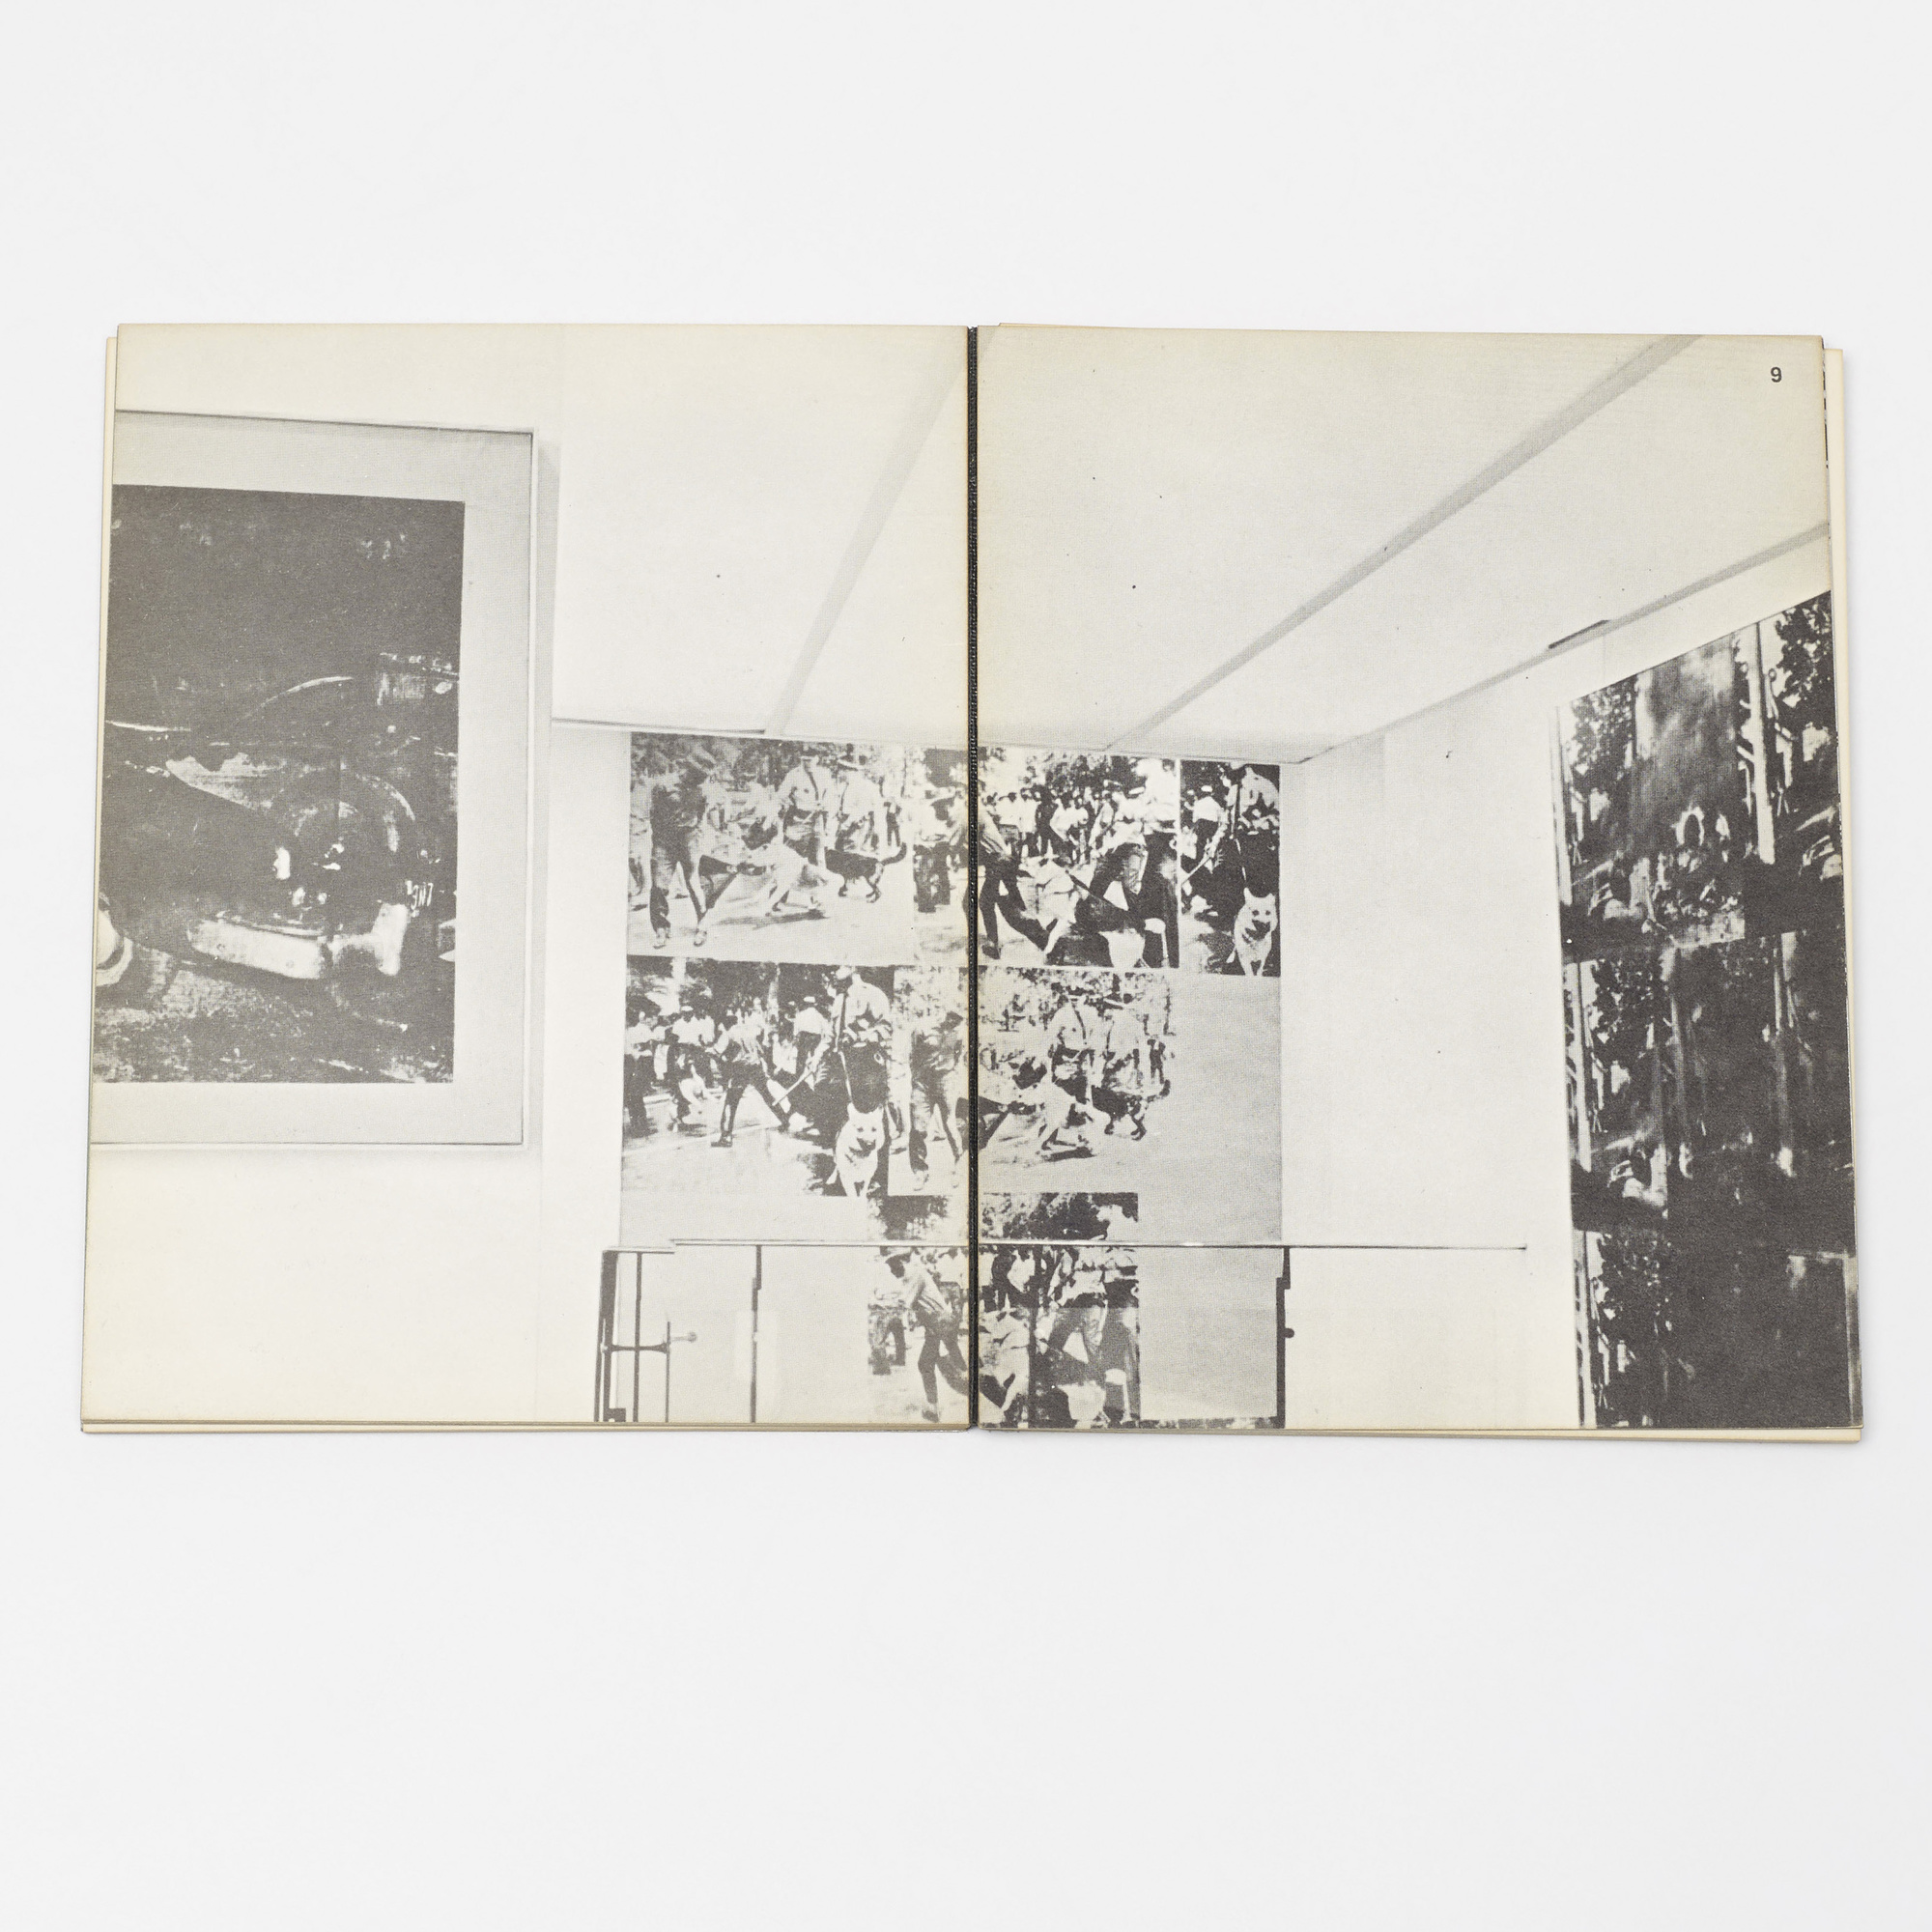 115: After Andy Warhol / exhibition catalog (3 of 4)